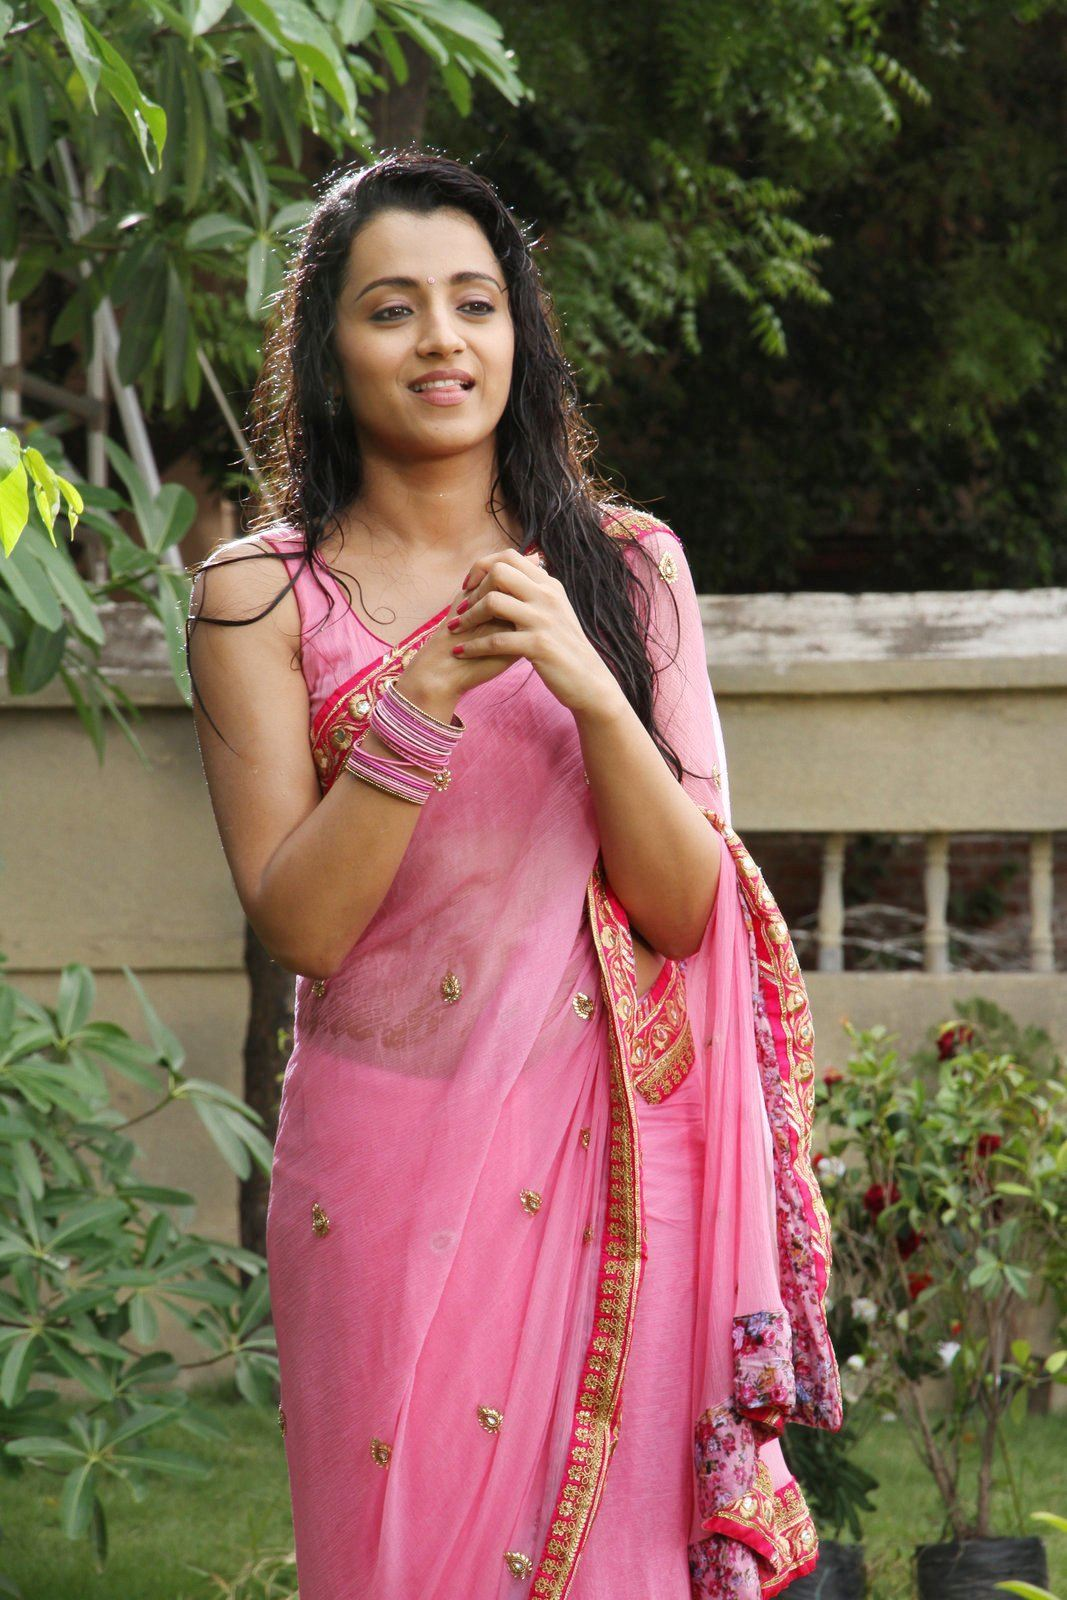 Makkhi Movie Hd Wallpaper Actress Trisha Krishnan Wet Hot Ultra Hd Photos In Pink